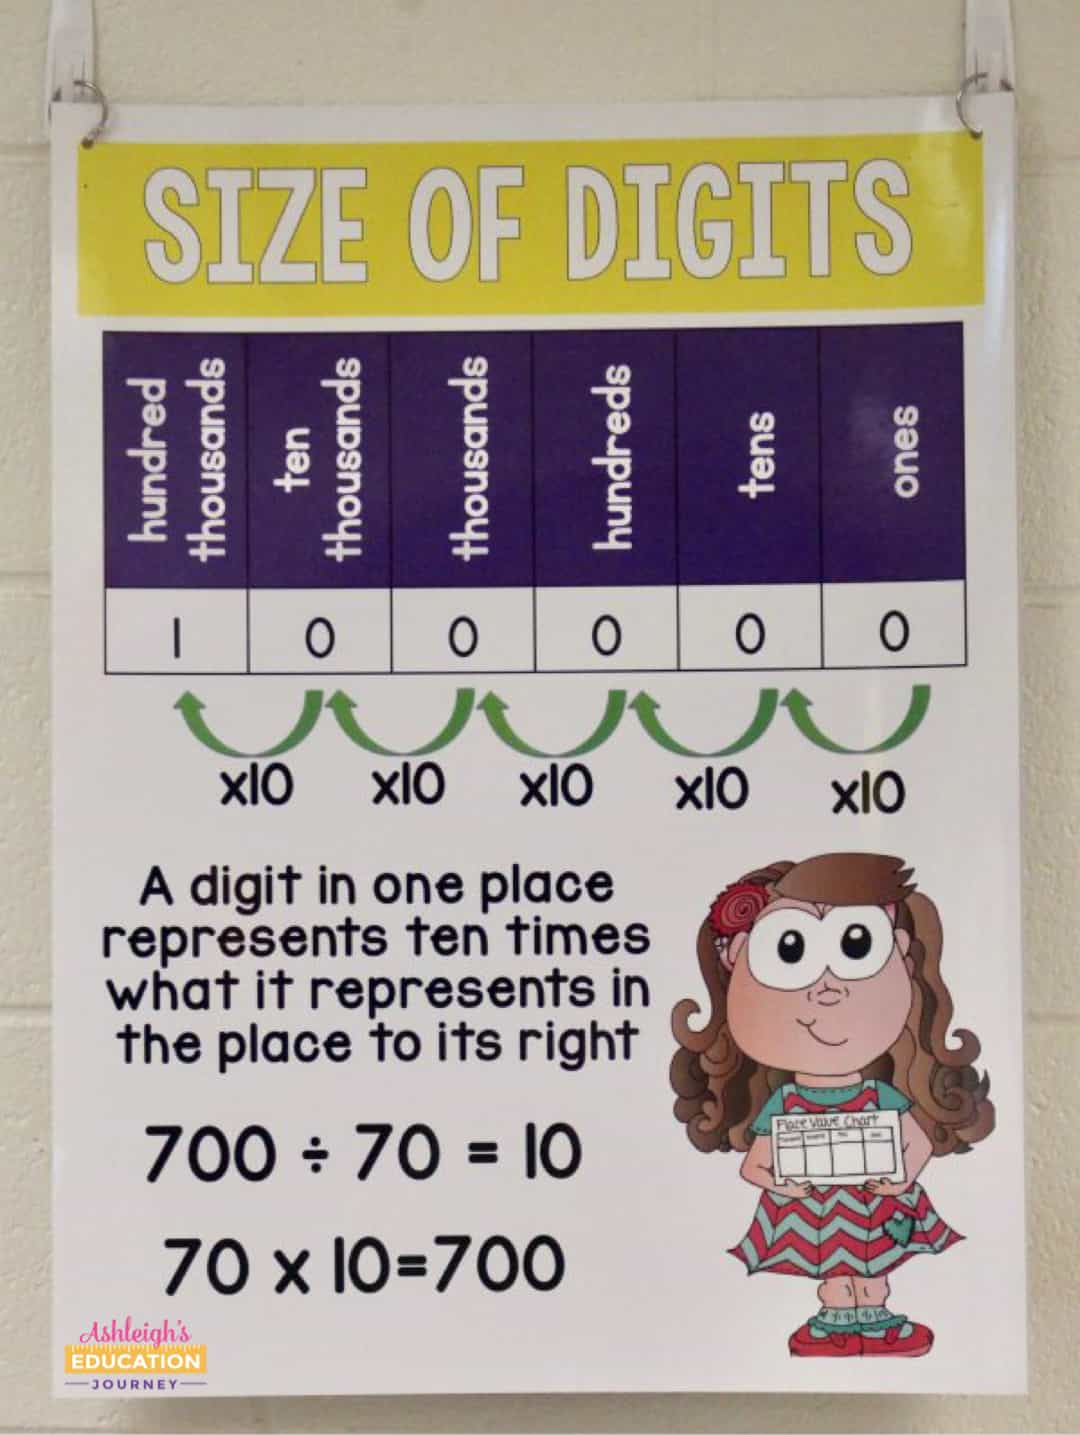 Size of digits math anchor chart for illustrating the value of digits